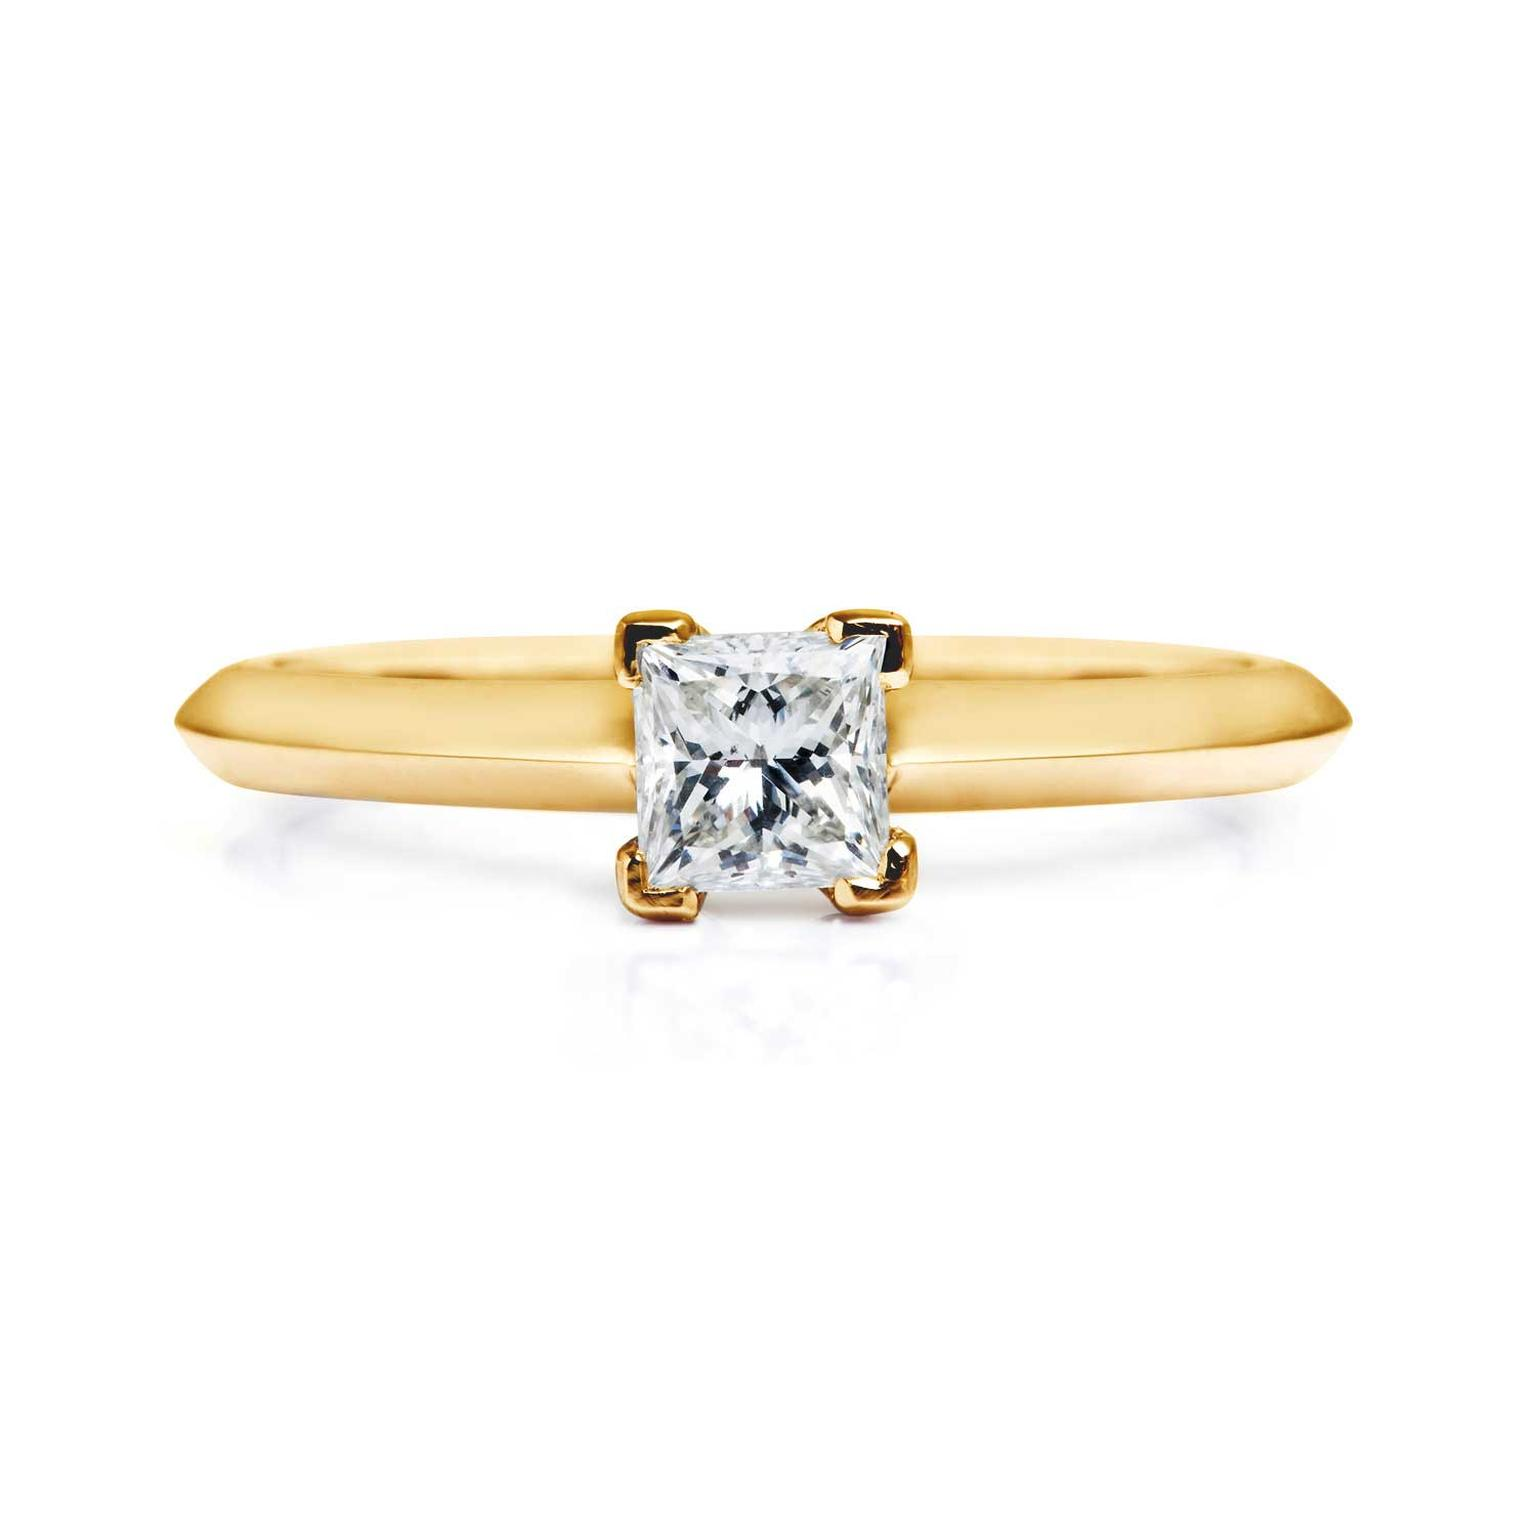 Arabel Lebrusan Nova ethical square diamond engagement ring in Fairtrade gold